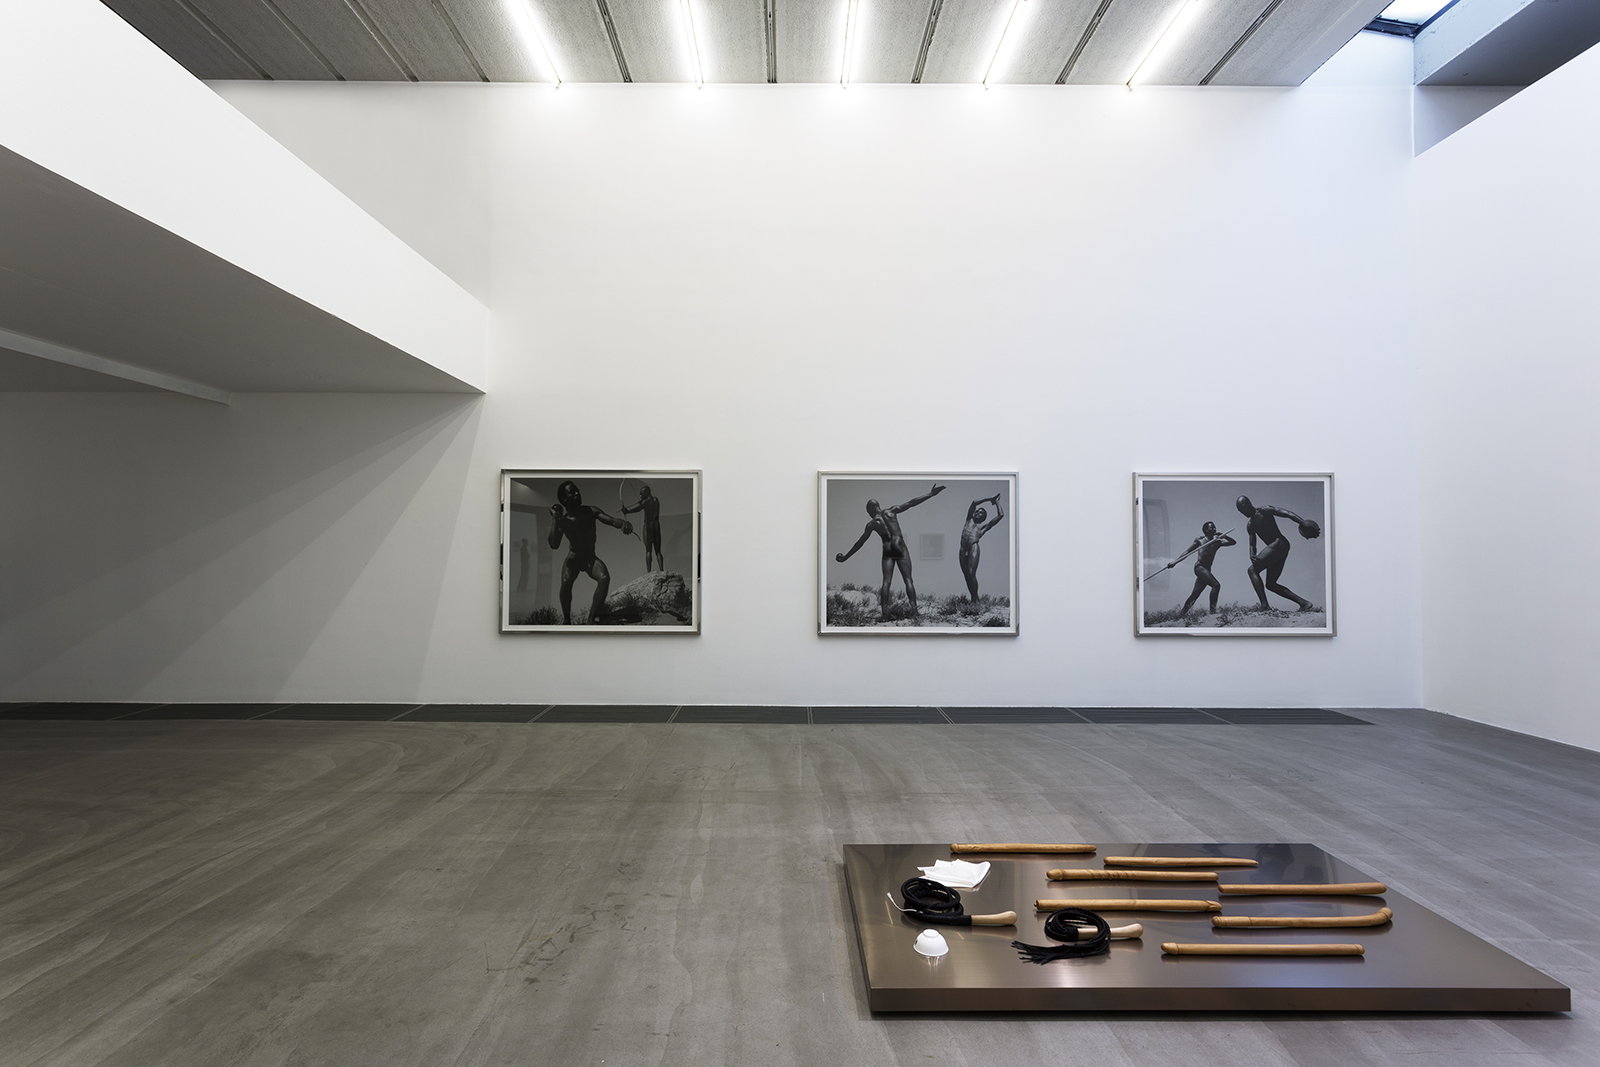 Two videos, three photographs, several related masterpieces, and American art , 2013. Installation view, Galerie Urs Meile, Beijing, China, 2013.